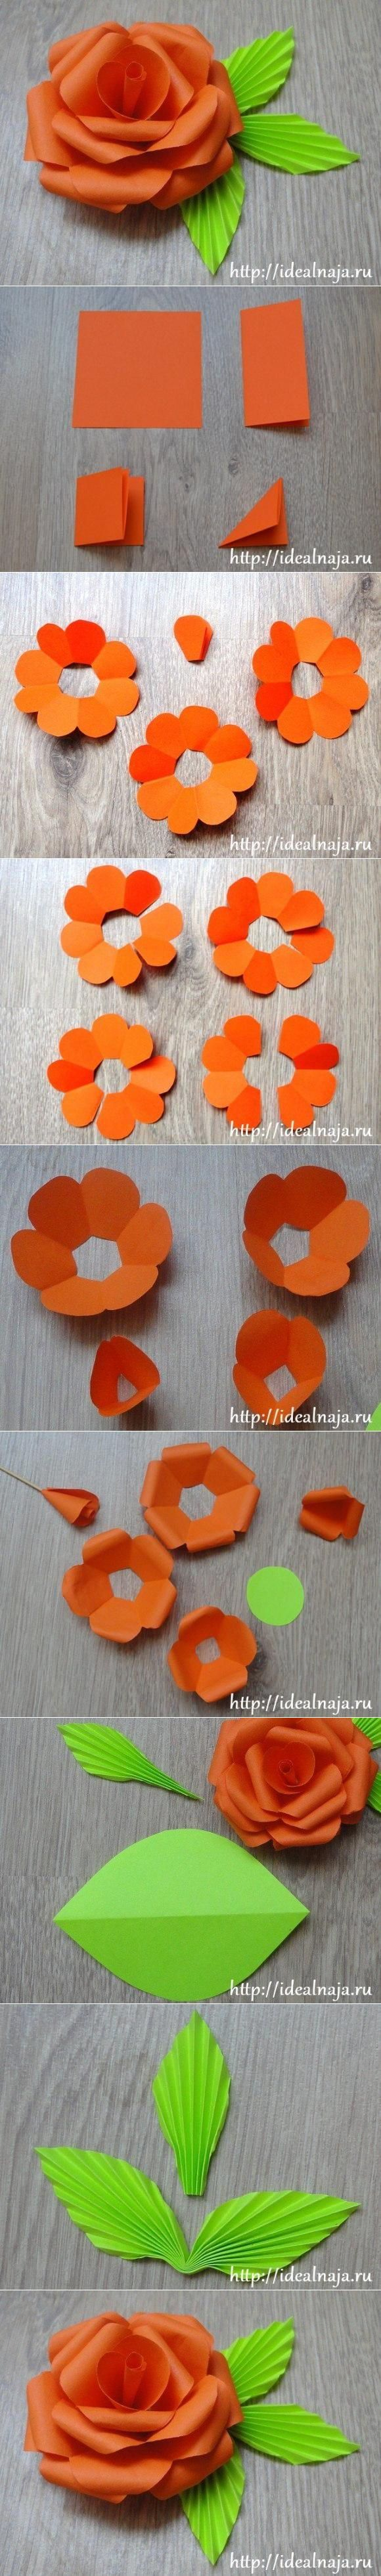 Diy Easy Paper Rose Flori Pinterest Easy Craft And Flowers